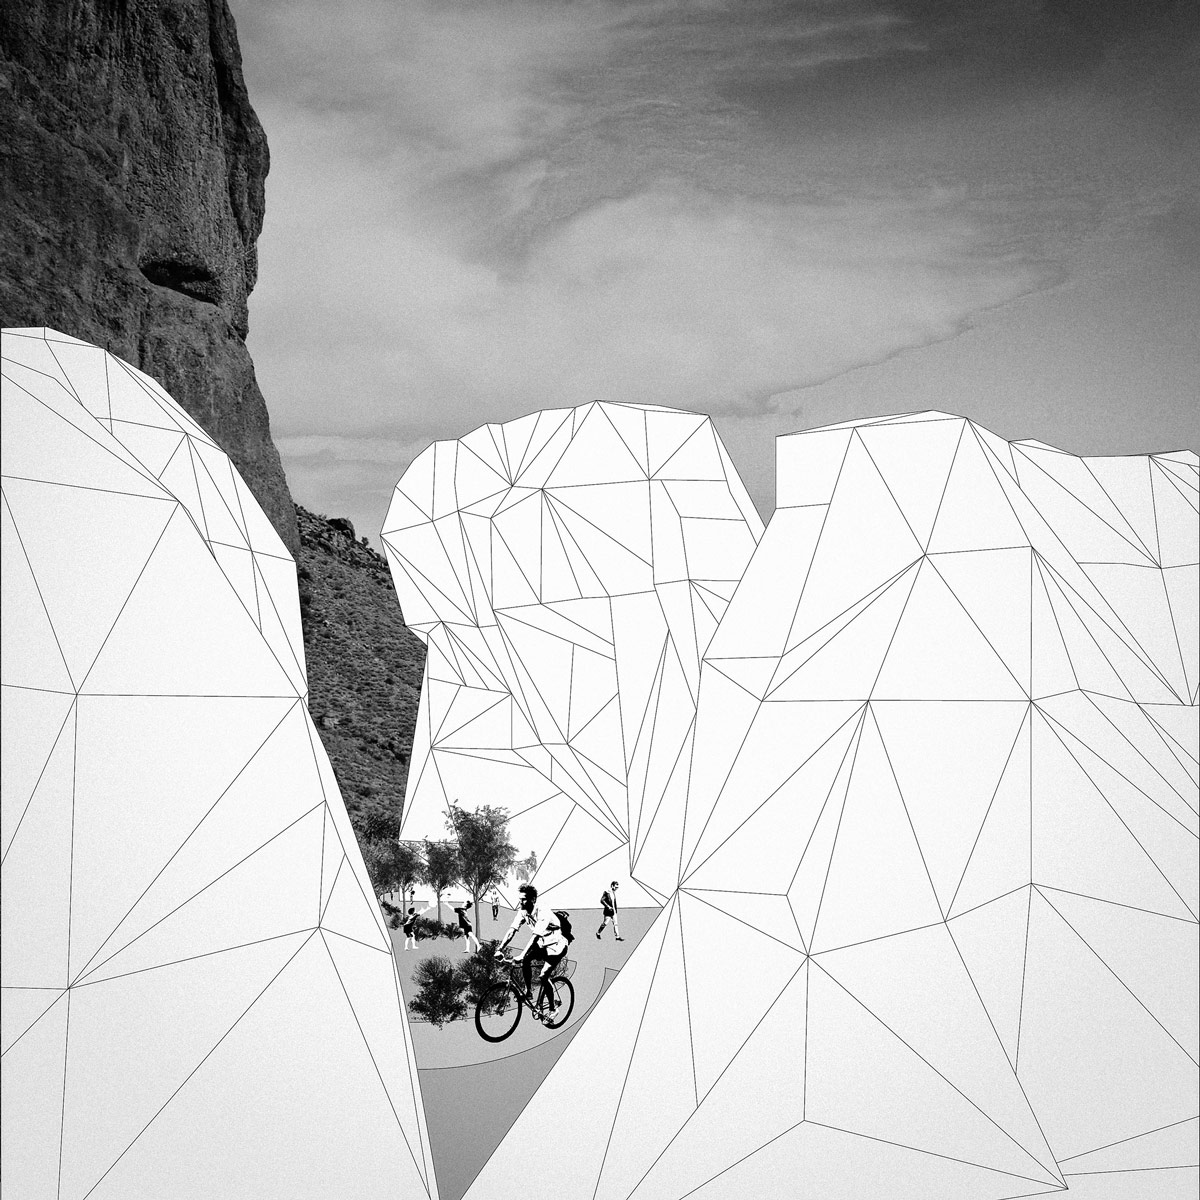 Perspective of desert housing masses camouflaged as mountains by student Claire Hinchman